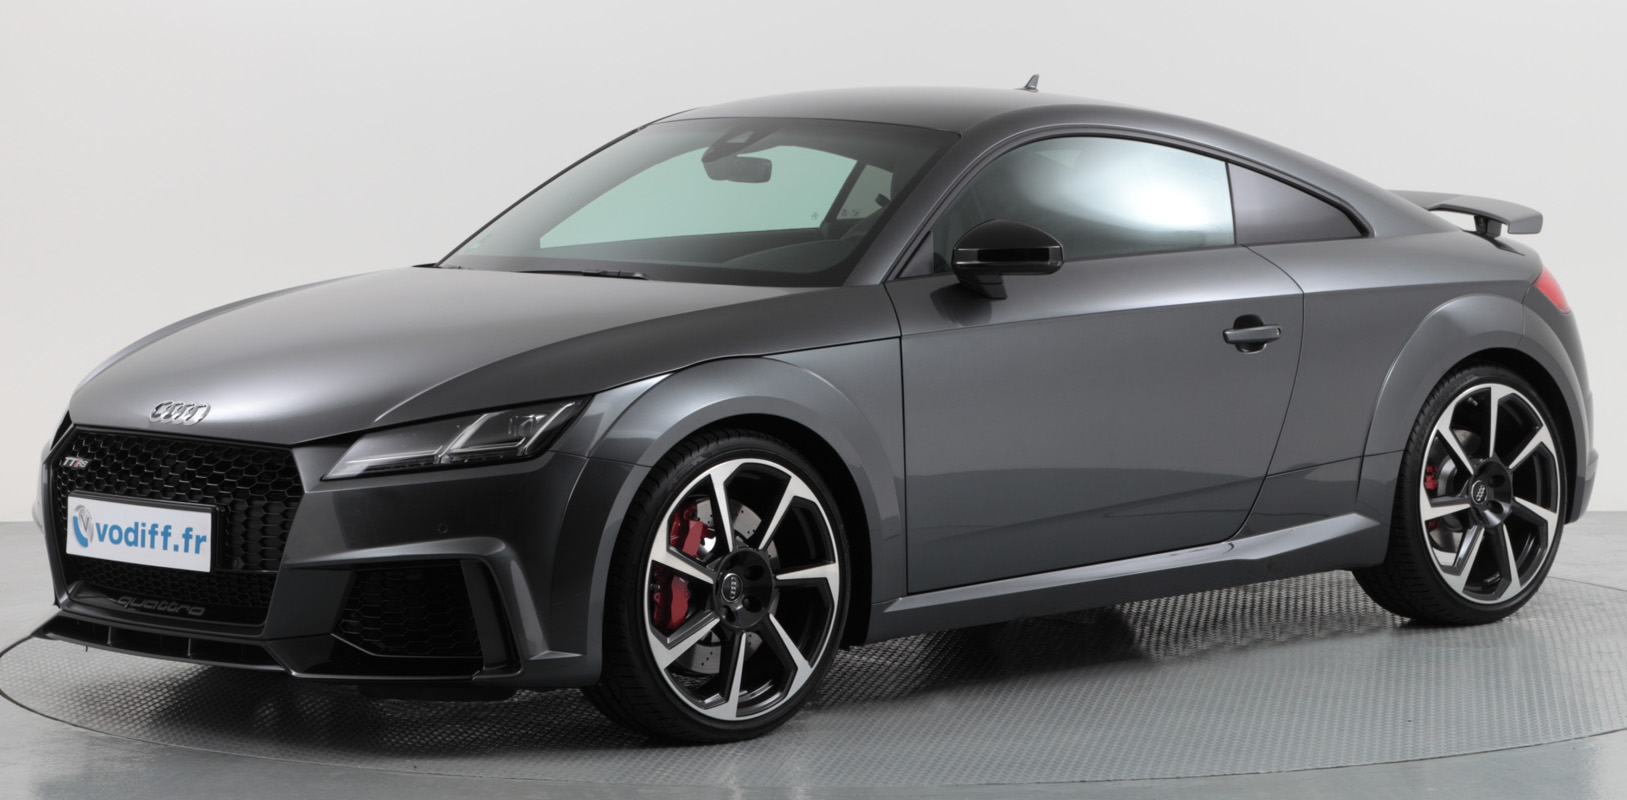 audi ttrs 2 5 tfsi quattro 400 cv s tronic neuf 91 000 euros occasion. Black Bedroom Furniture Sets. Home Design Ideas